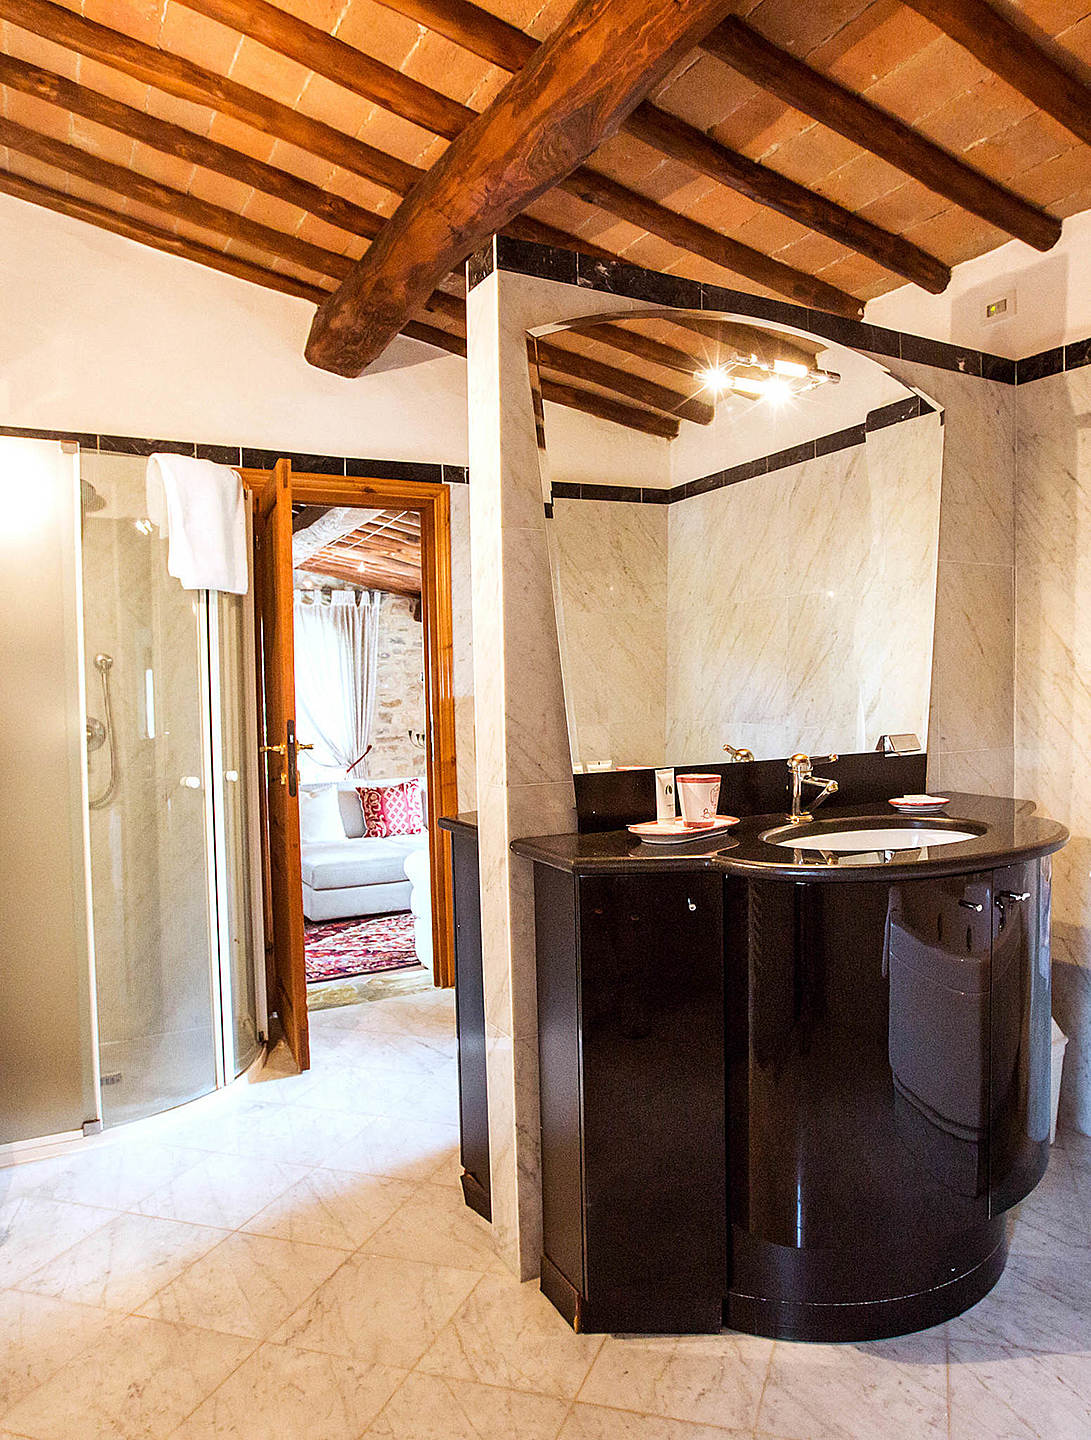 Bathrooms are brightened by Tuscany's sunshine. 